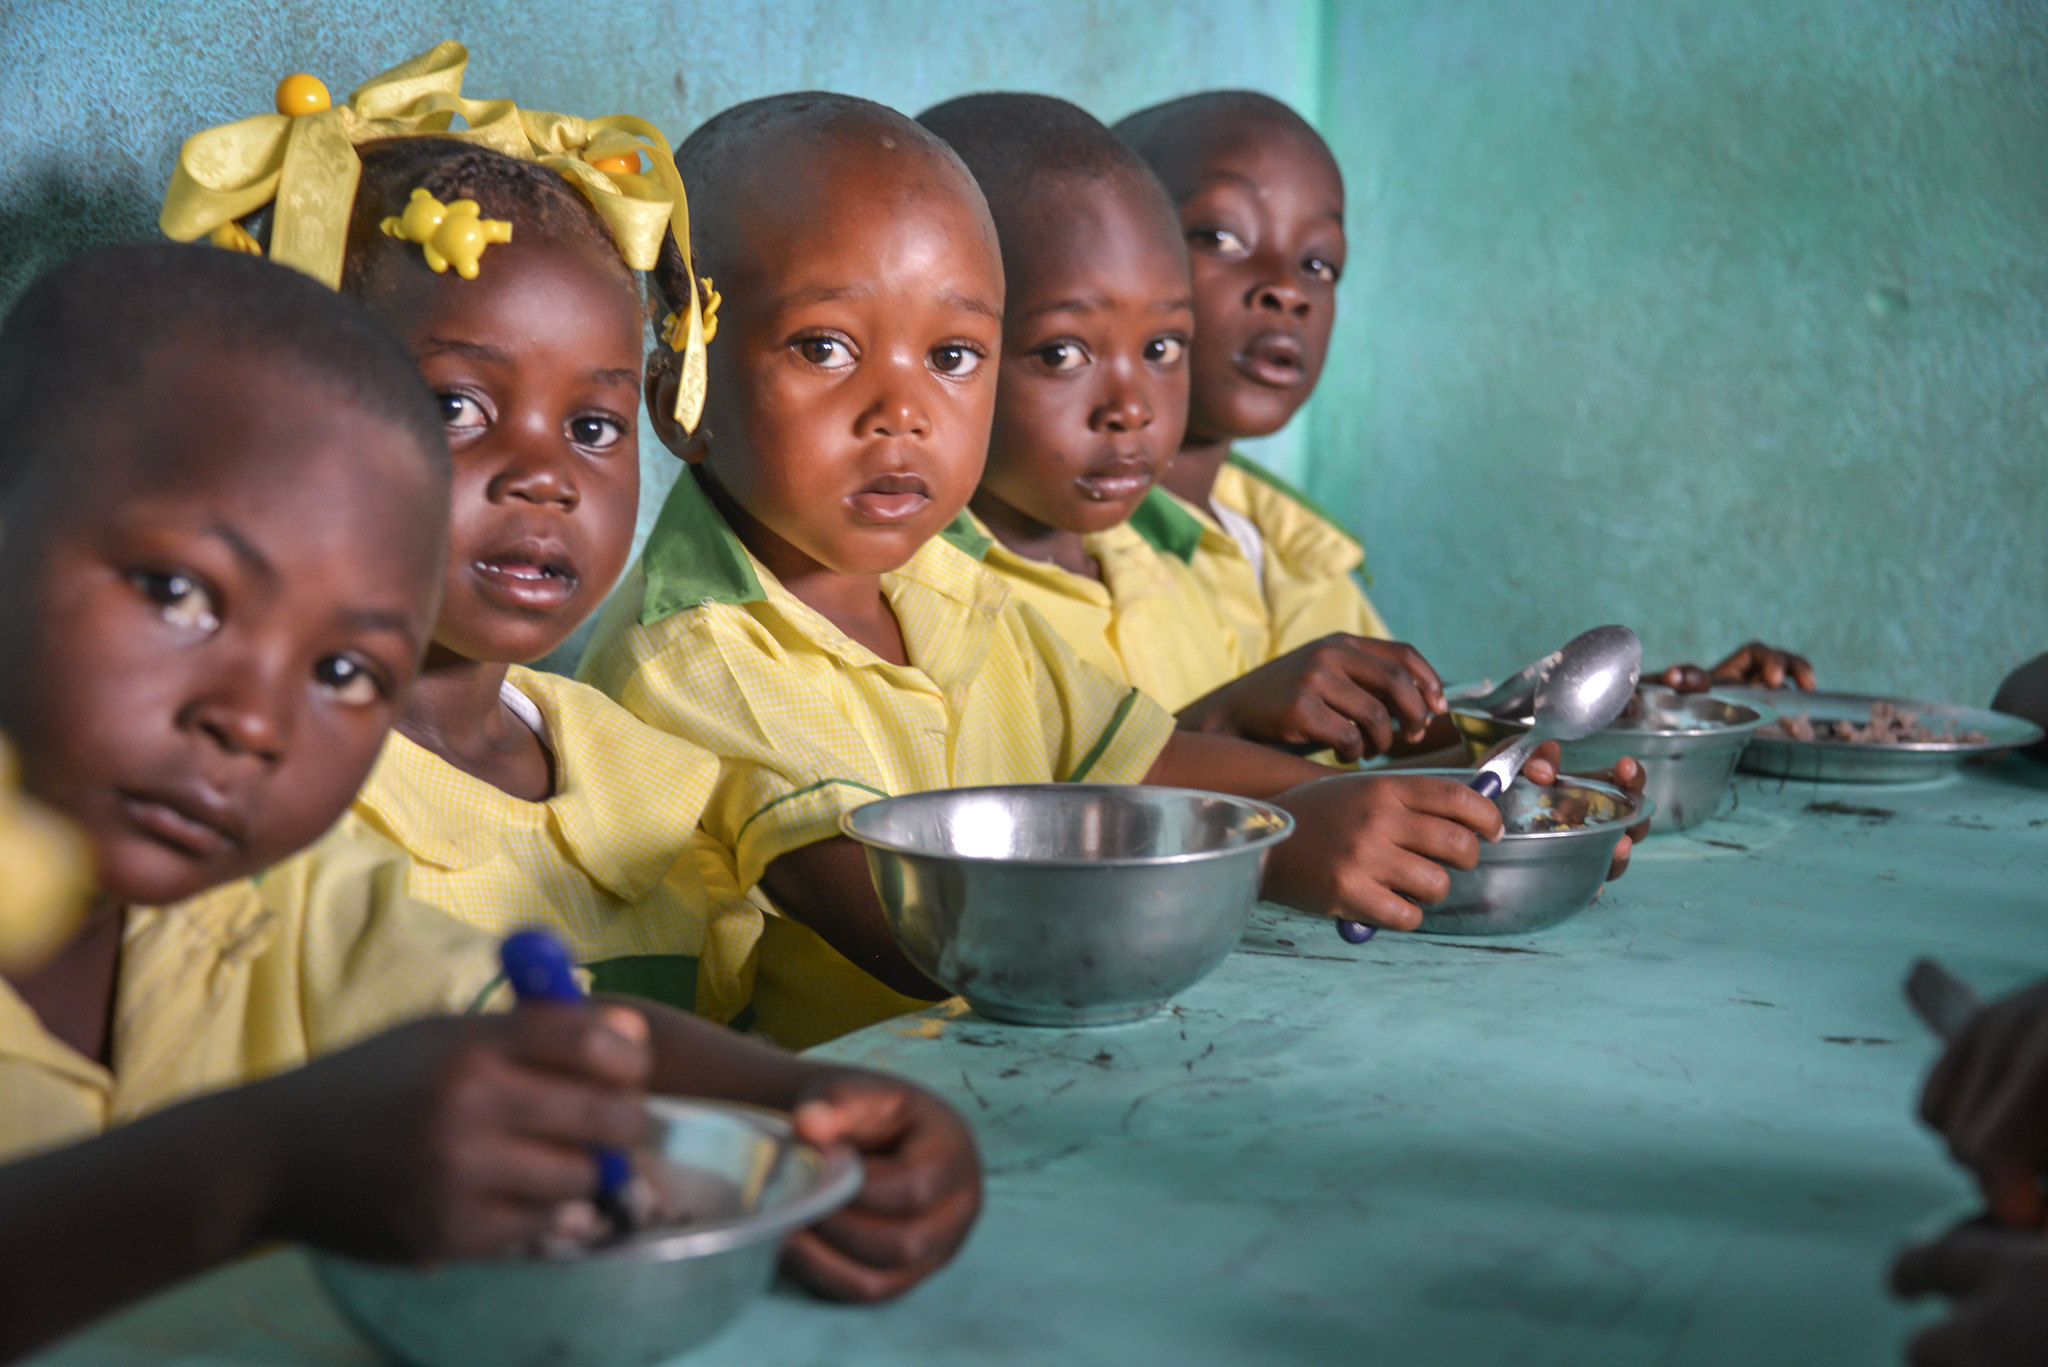 Apps That Help Fight Hunger